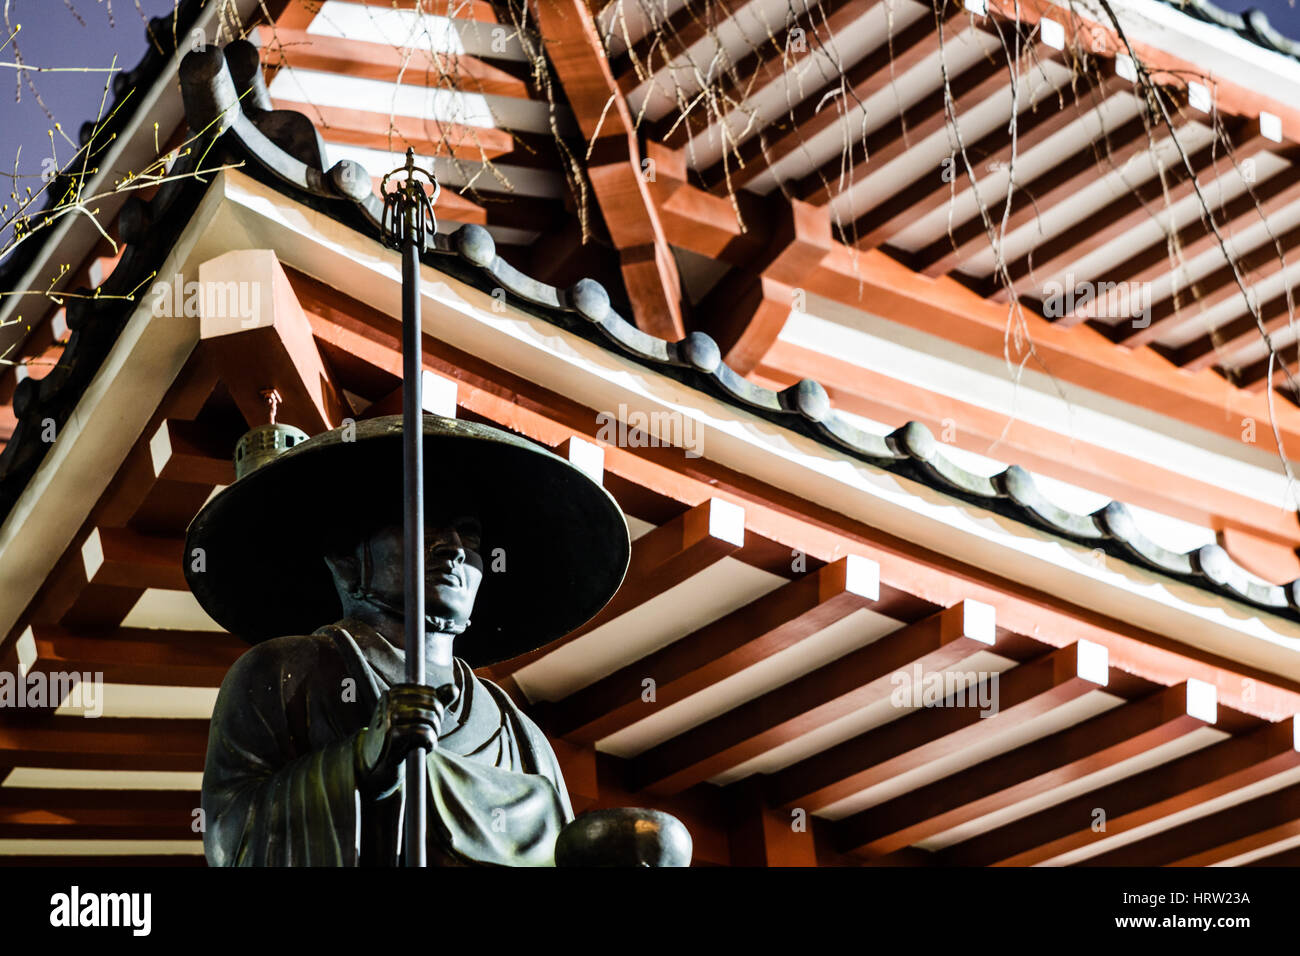 A stoic monk, waiting under the eaves of a Japanese temple. - Stock Image